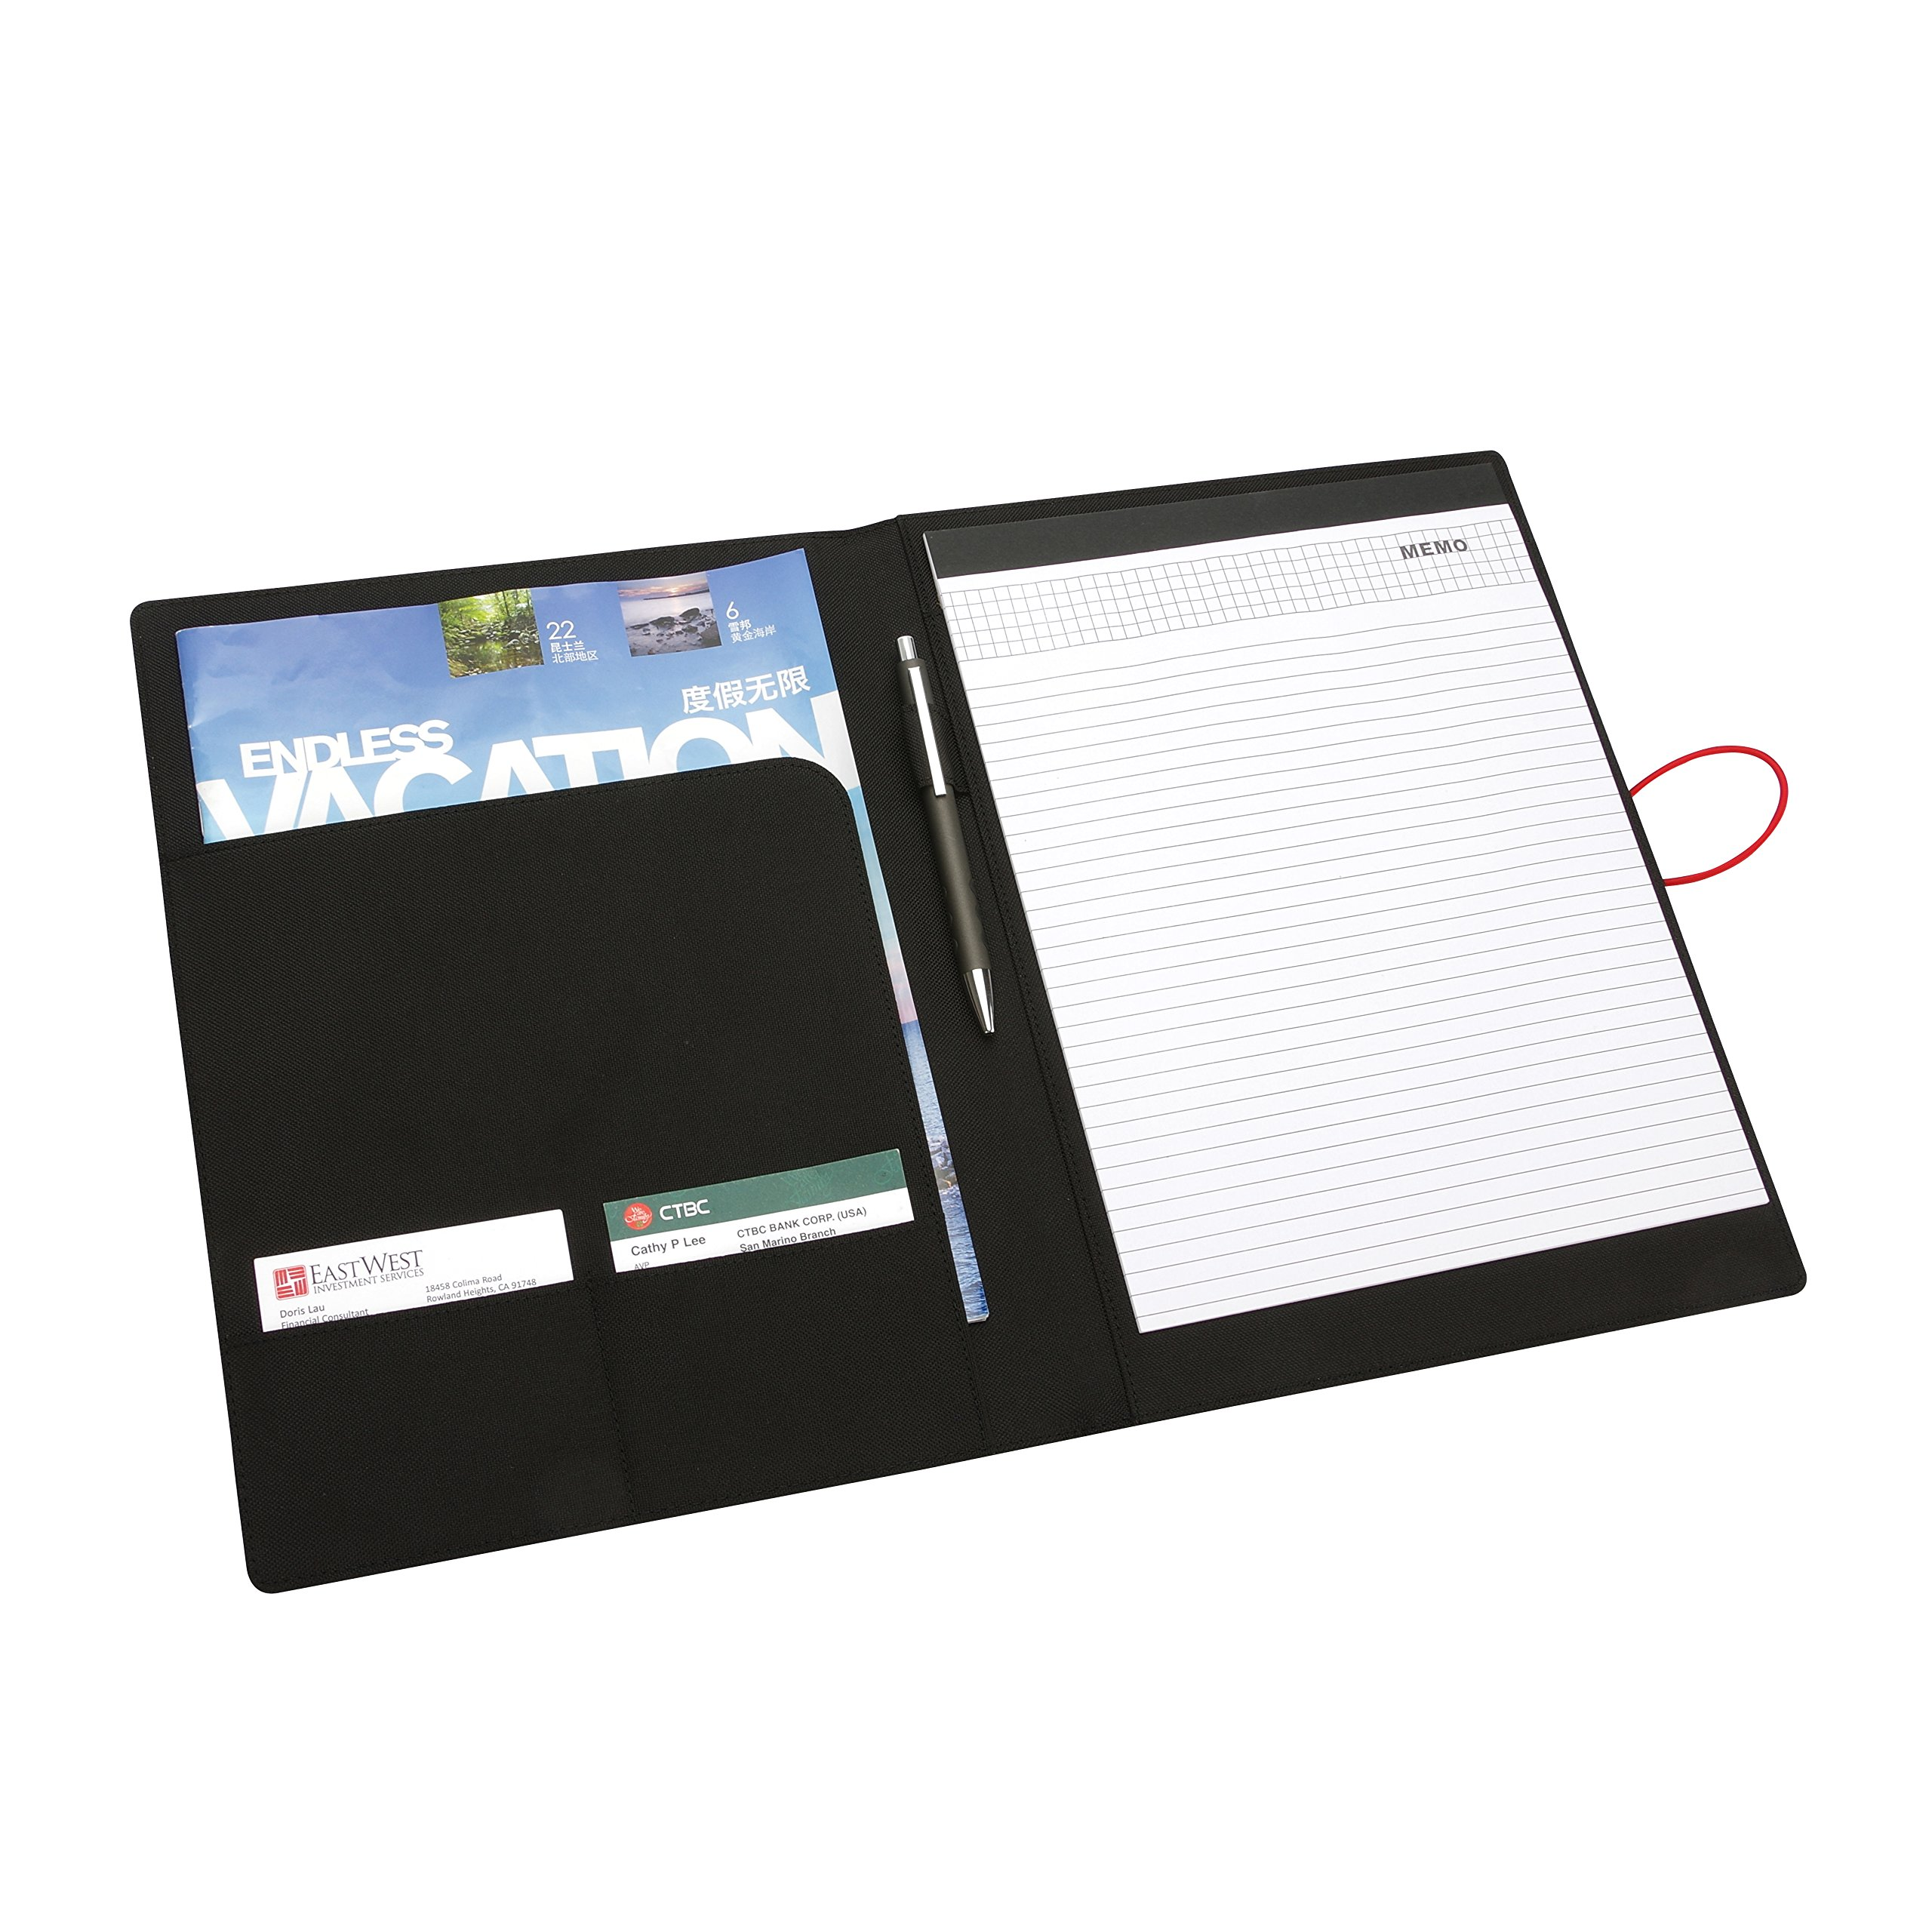 NuVision Executive Briefcase Padfolio, Black Fabric Notepad Portfolio with Elastic Band Closure, Writing Pad & Pen Holder